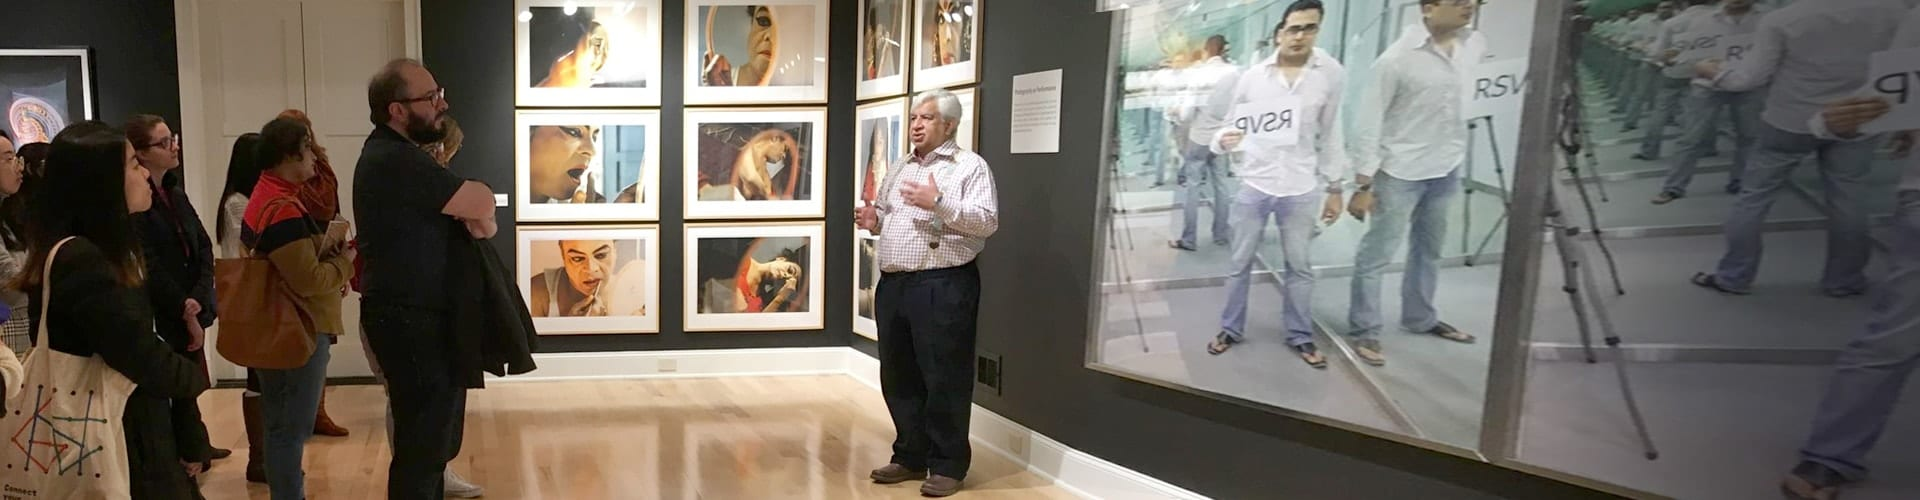 Class visit to Umesh and Sunanda Gaur Collection during Looking In, Looking Out Contemporary Indian Photography, Spring 2019